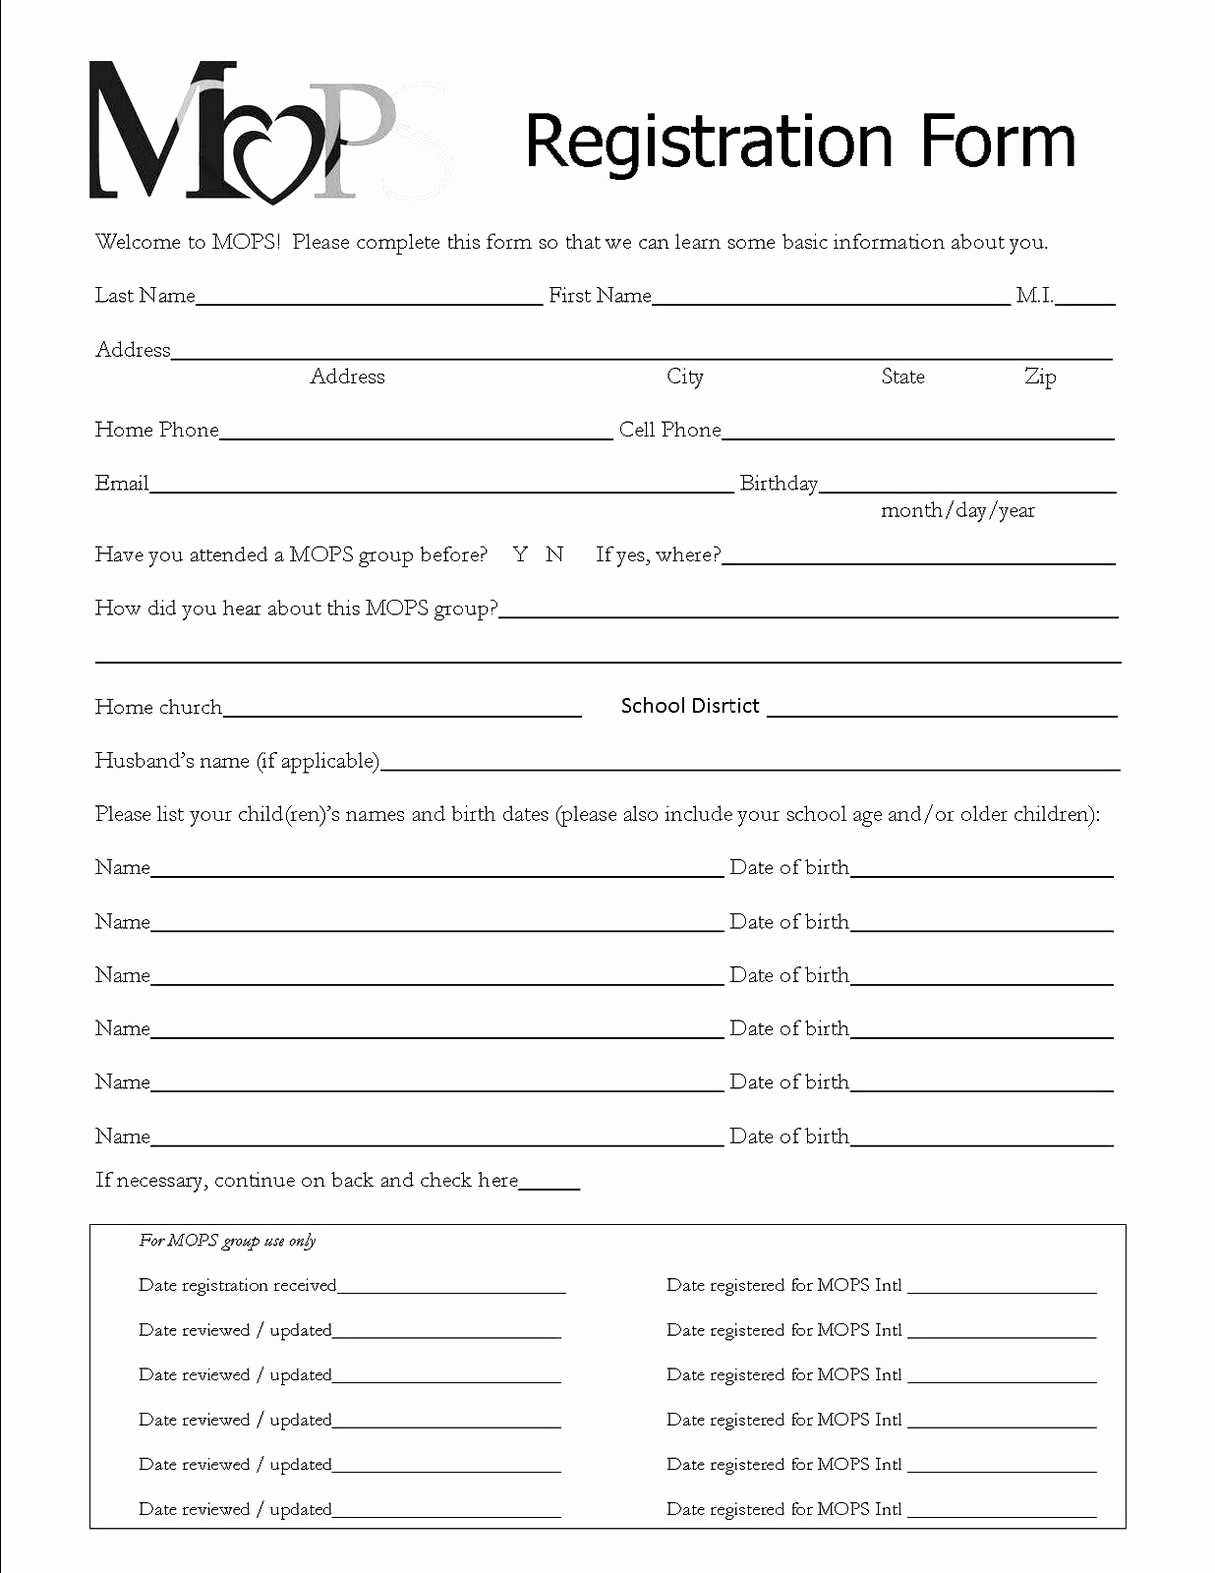 Registration form Template Free Download Lovely Registration forms Template Free